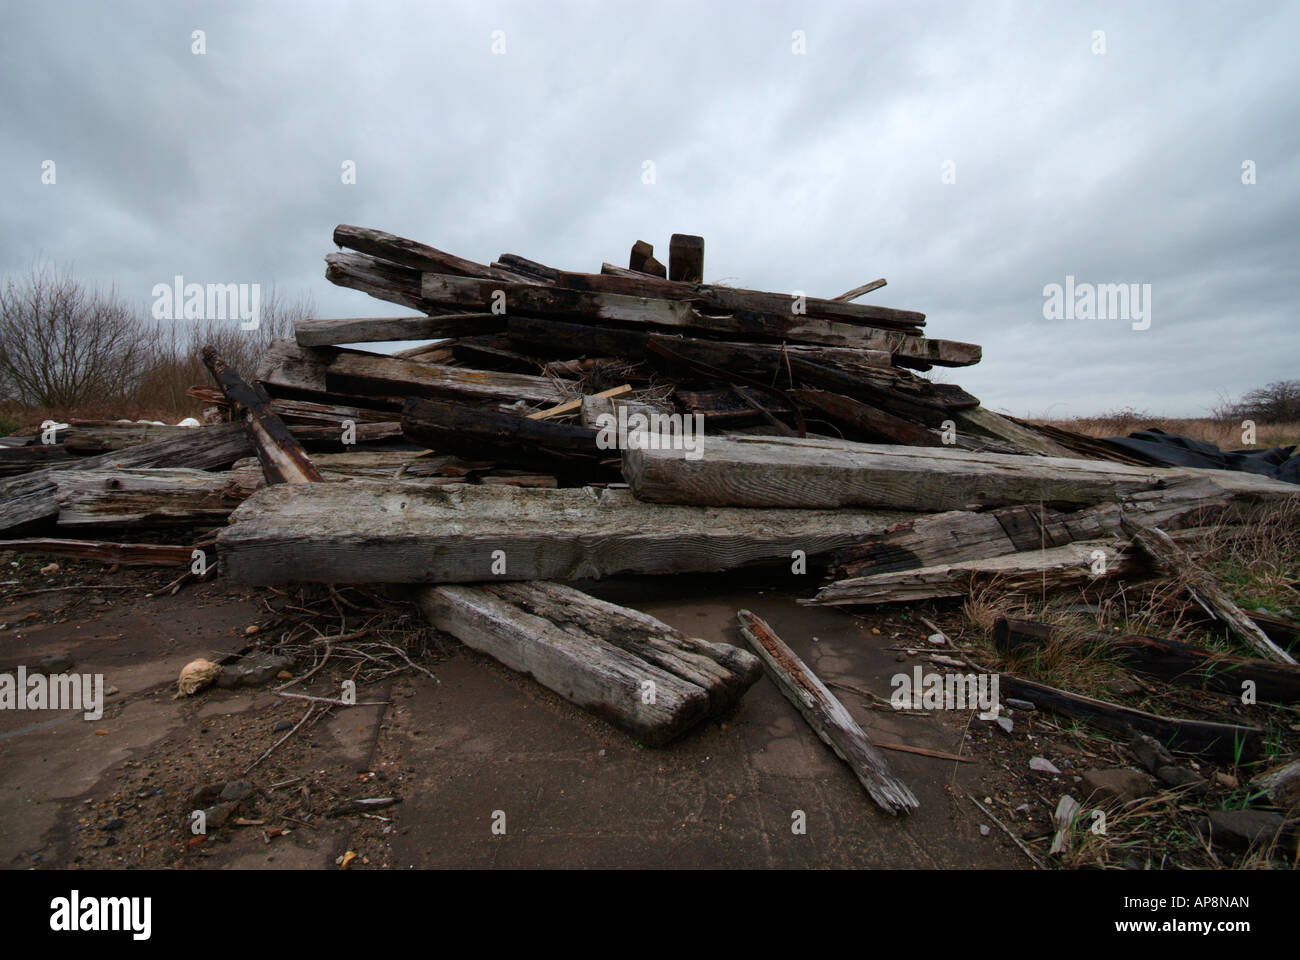 Railway sleepers dumped onto the ground - Stock Image